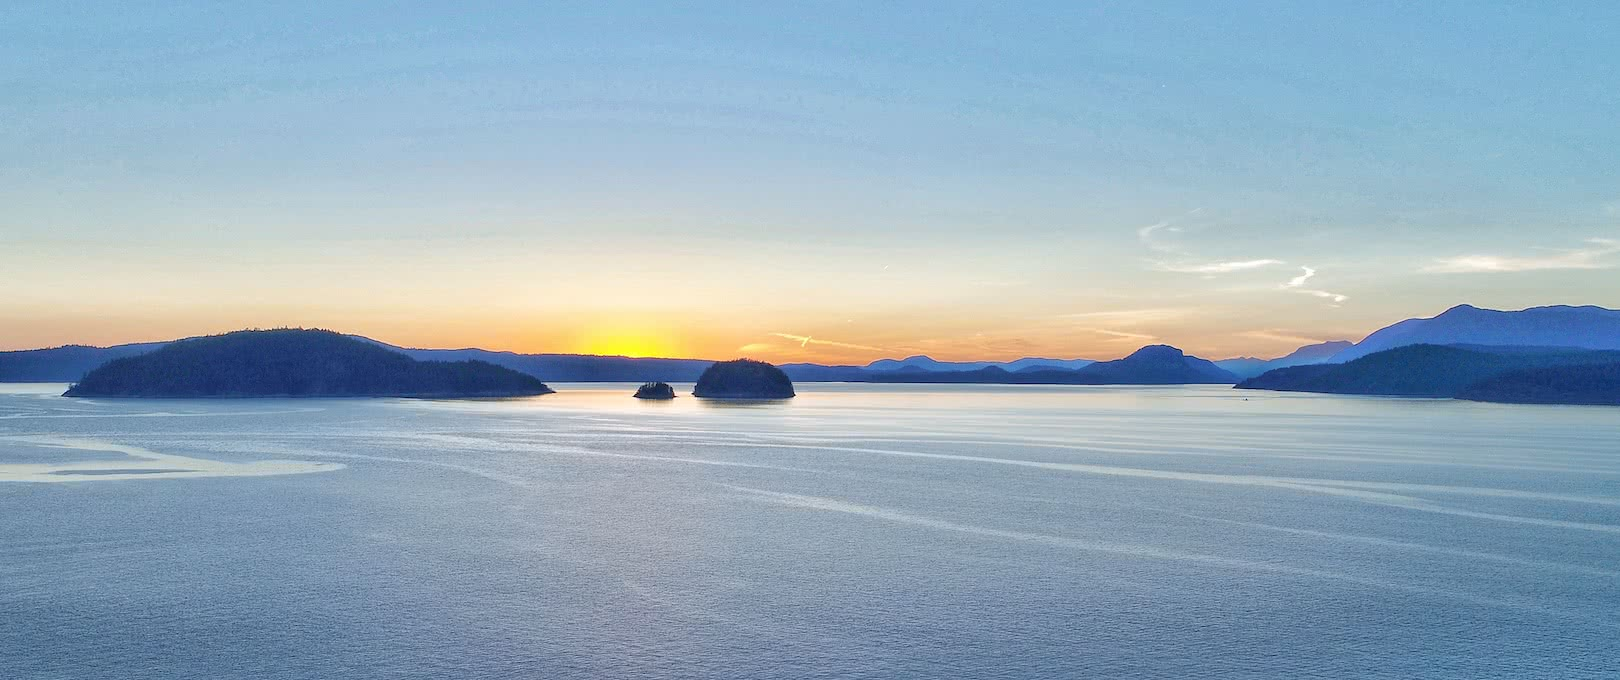 A sunset over Desolation Sound, British Columbia